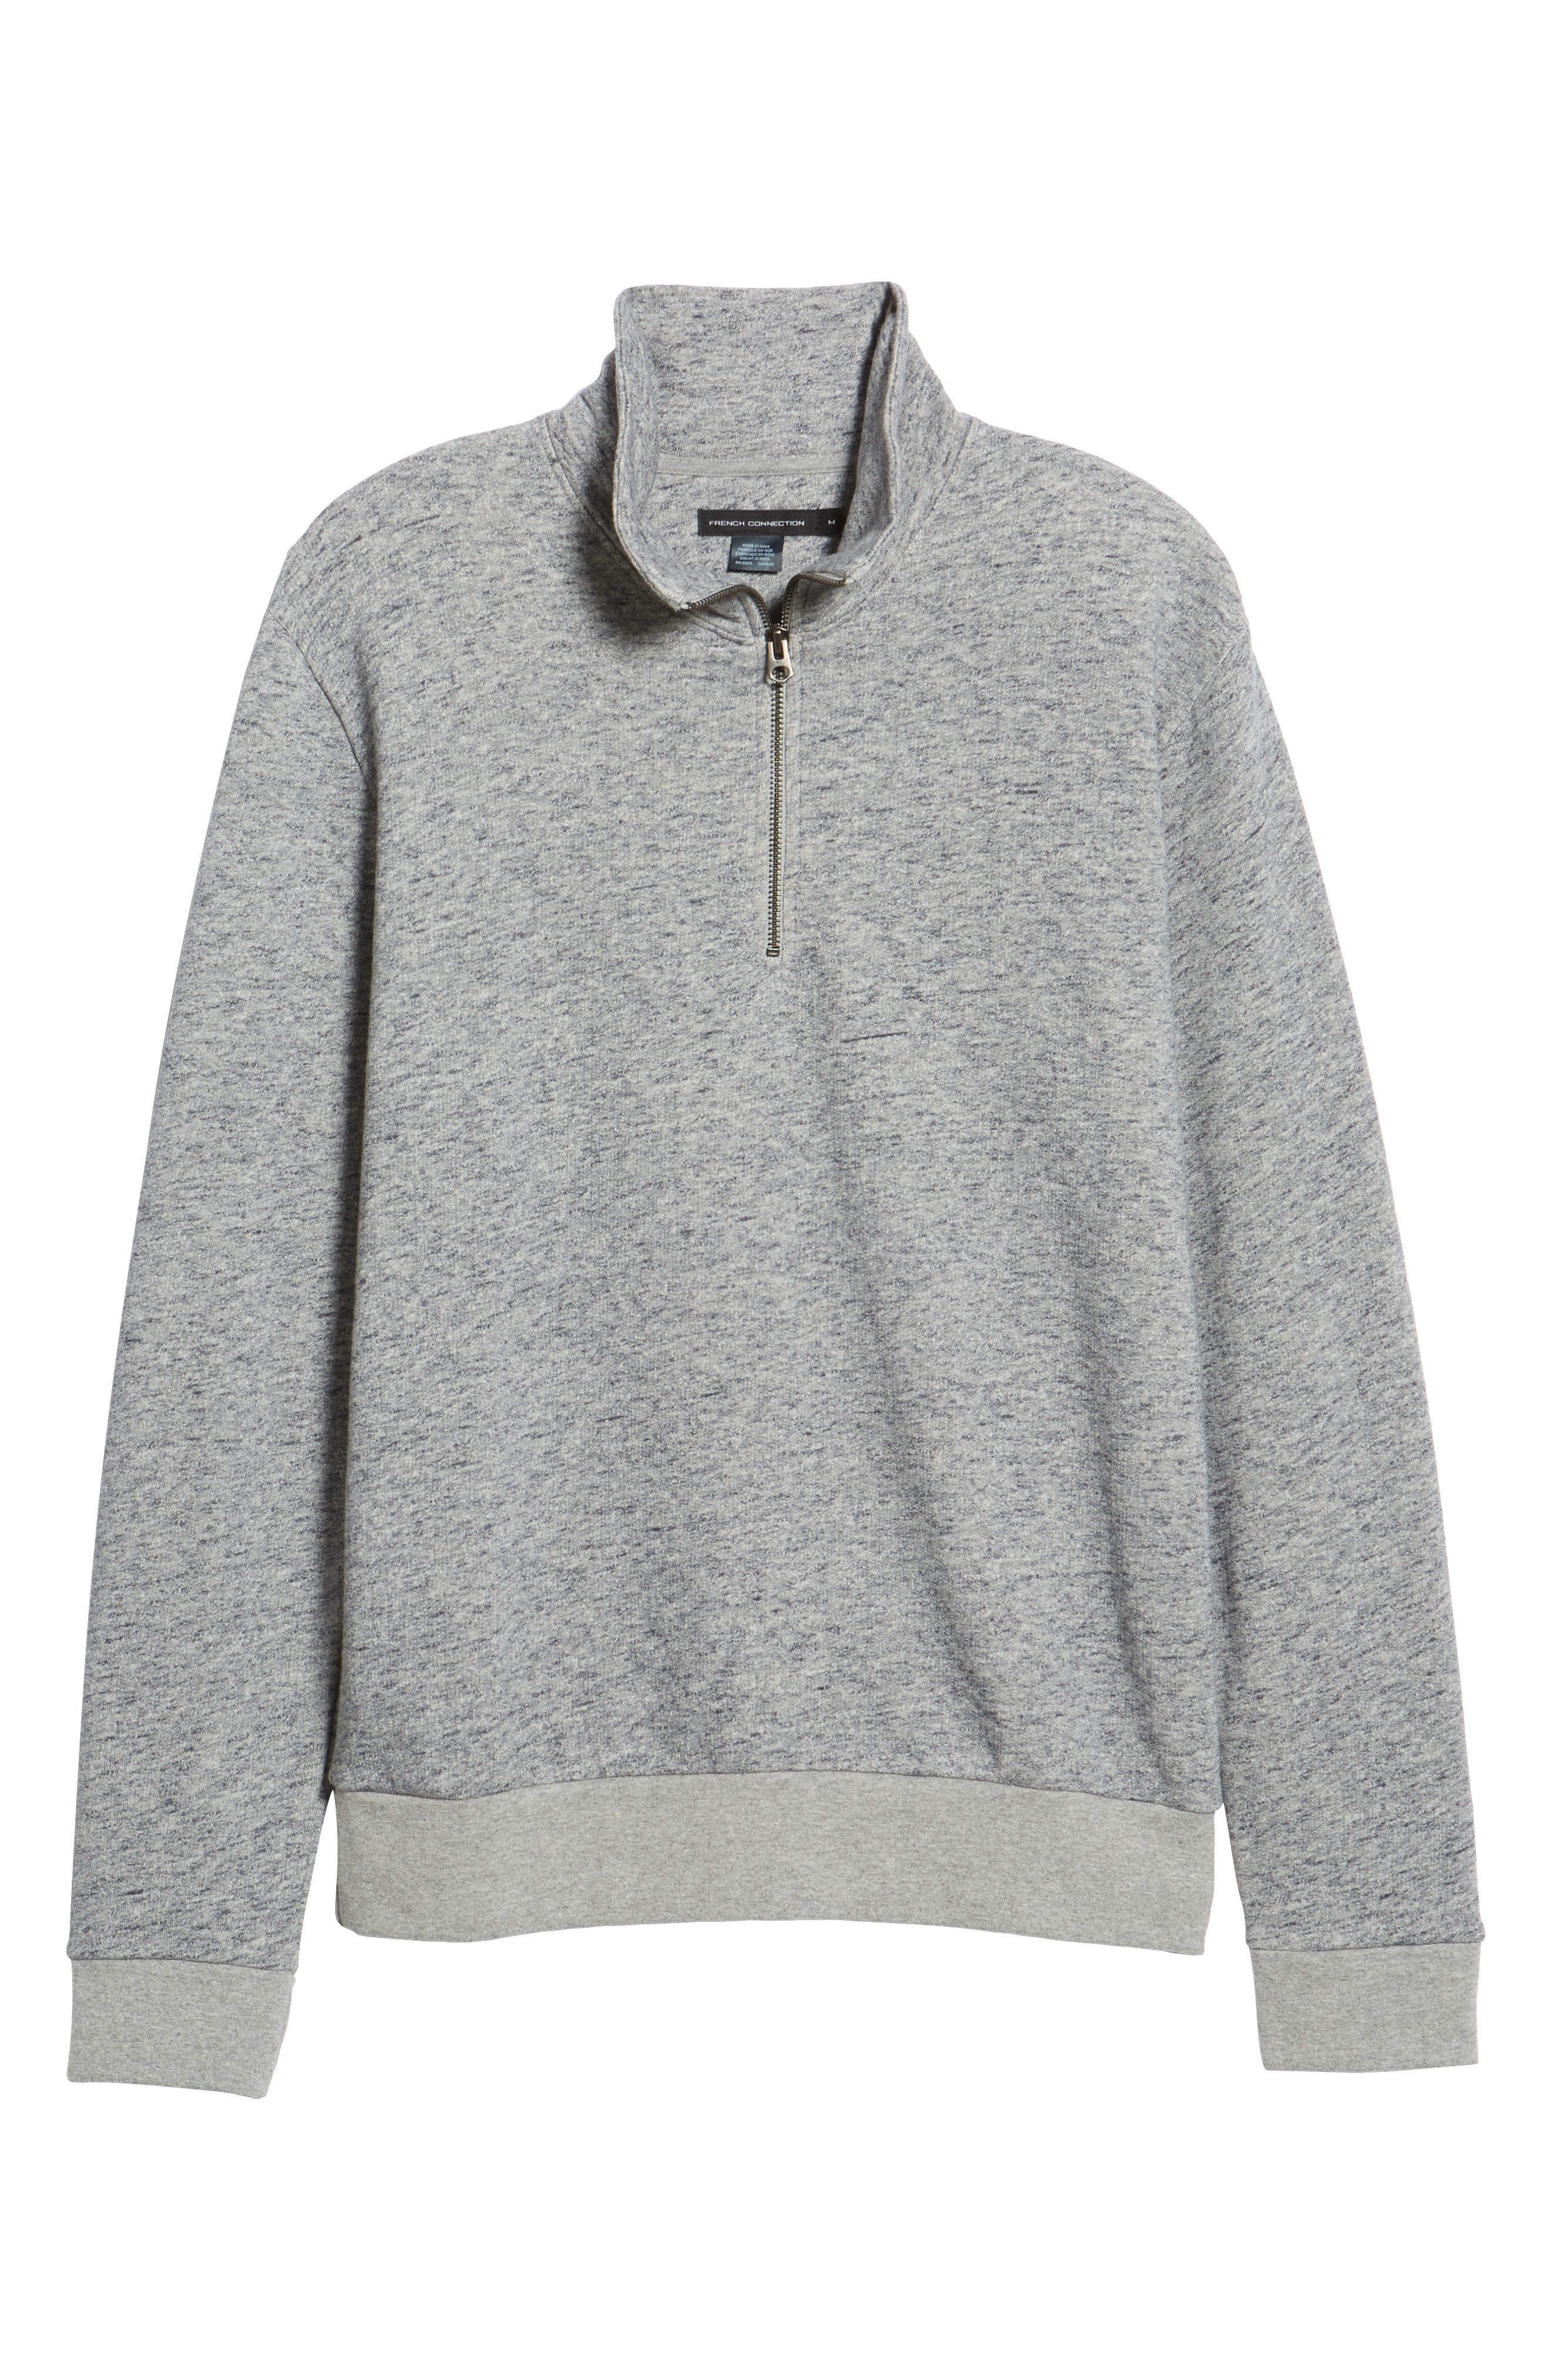 Winning Quarter Zip Regular Fit Sweatshirt,                             Alternate thumbnail 6, color,                             GREY MOULINE